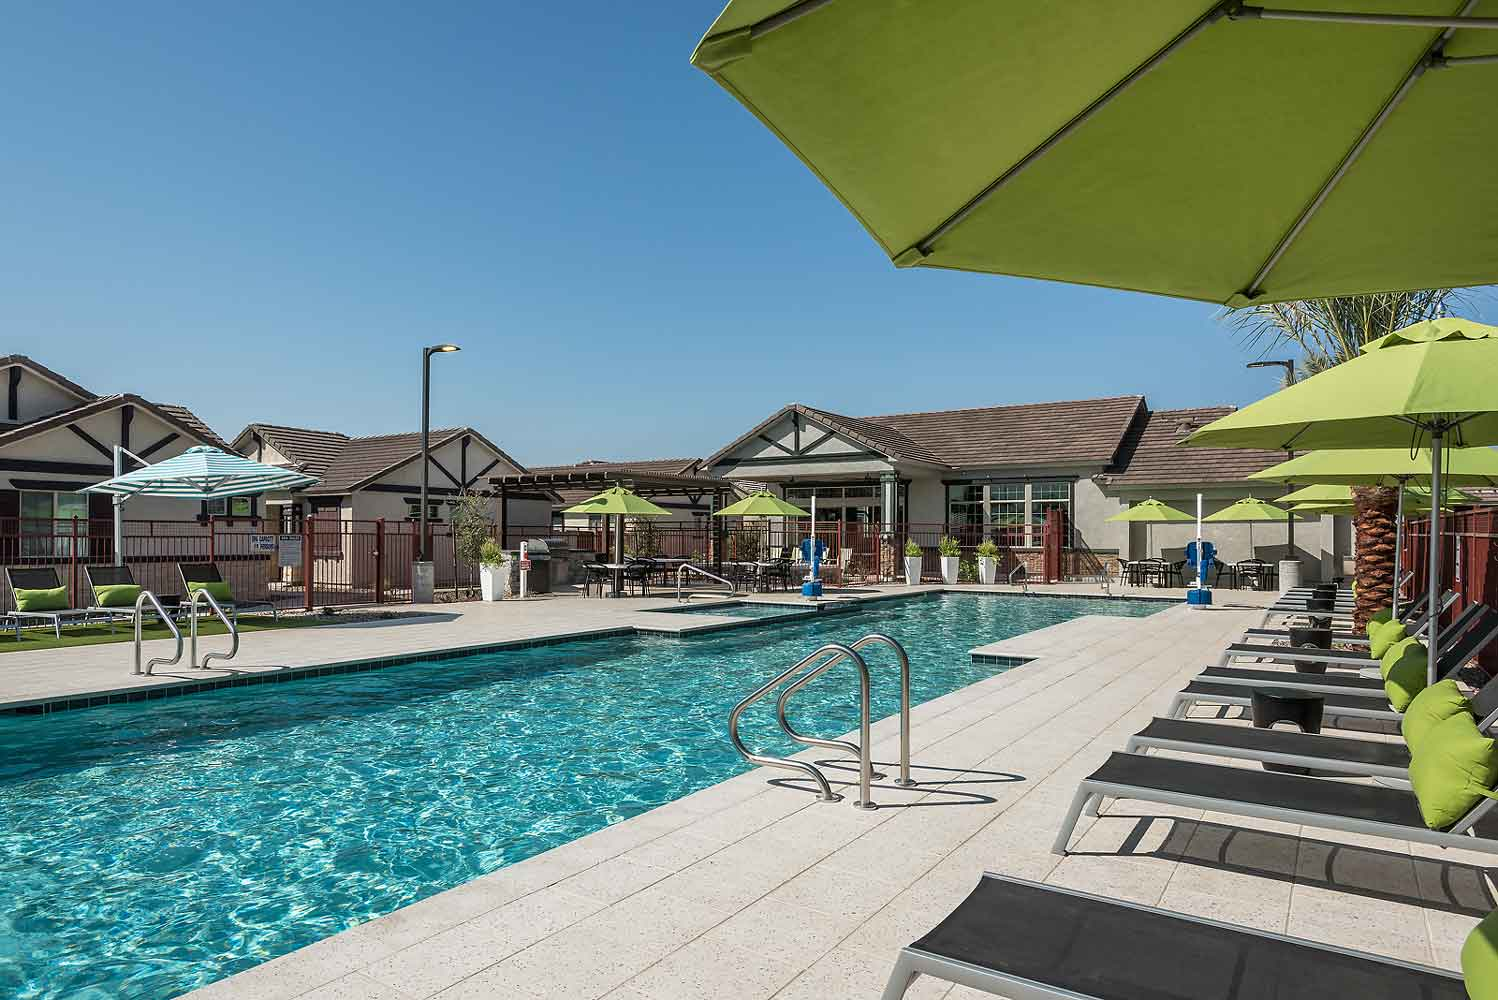 Poolside Lounge Area at Harvard Crossing Apartments in Goodyear, AZ